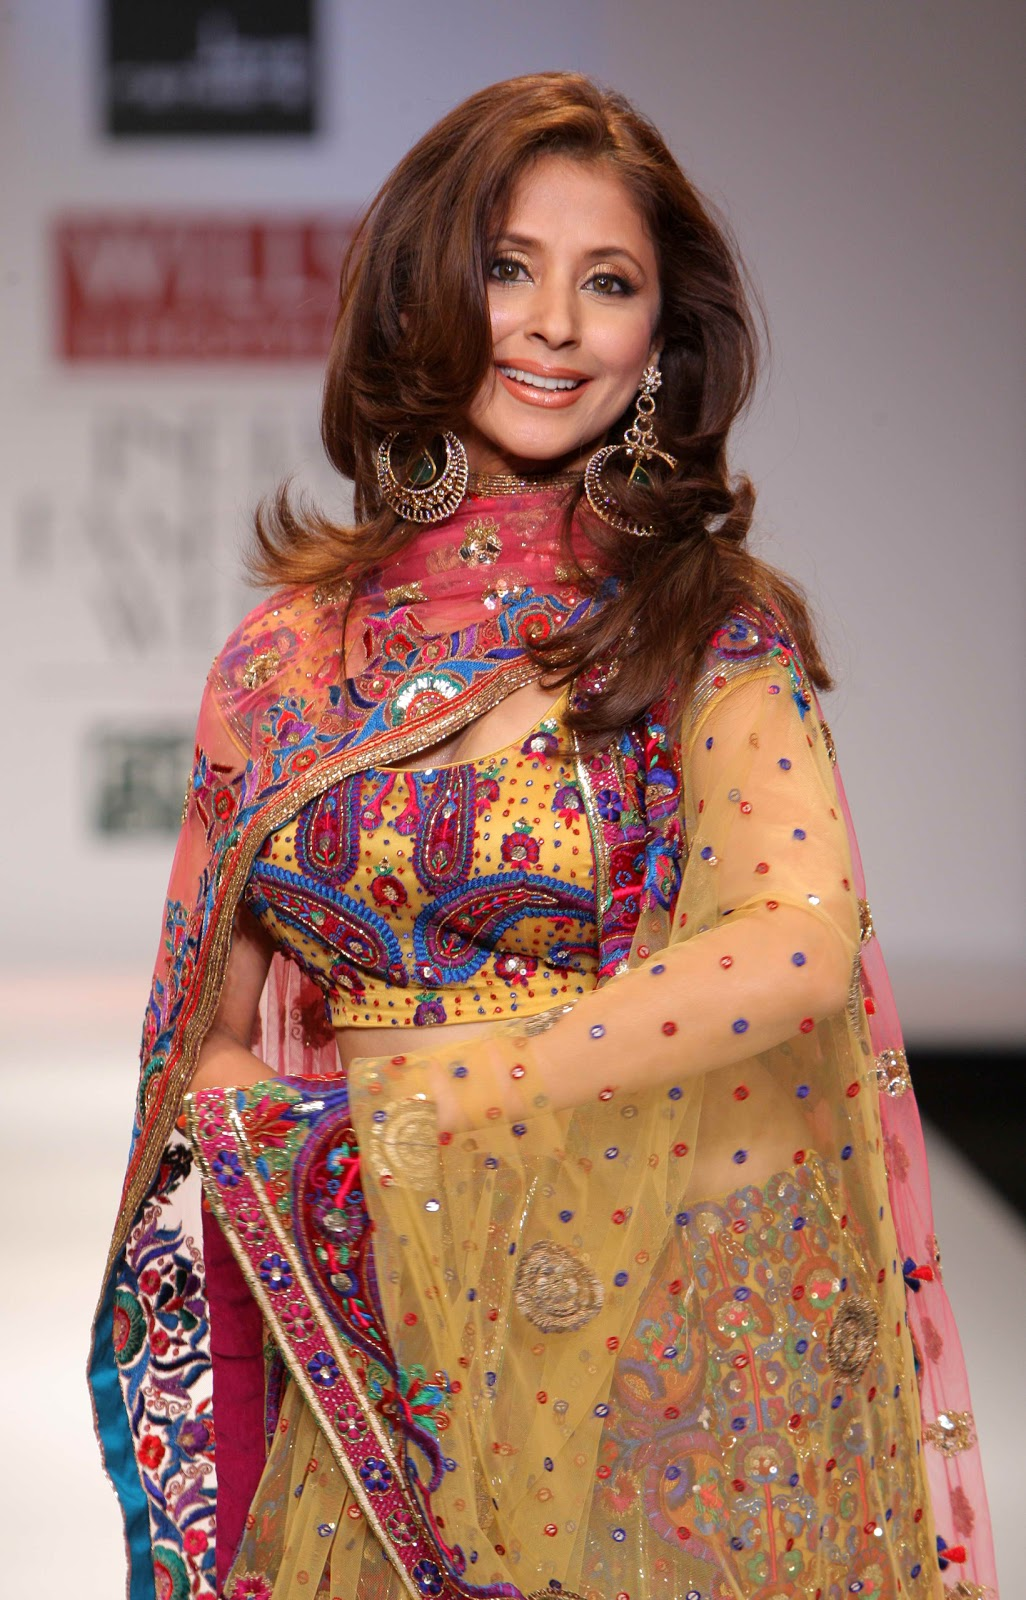 Urmila Matondkar Hot In Lehenga Choli At The Wills Lifestyle India Fashion Week